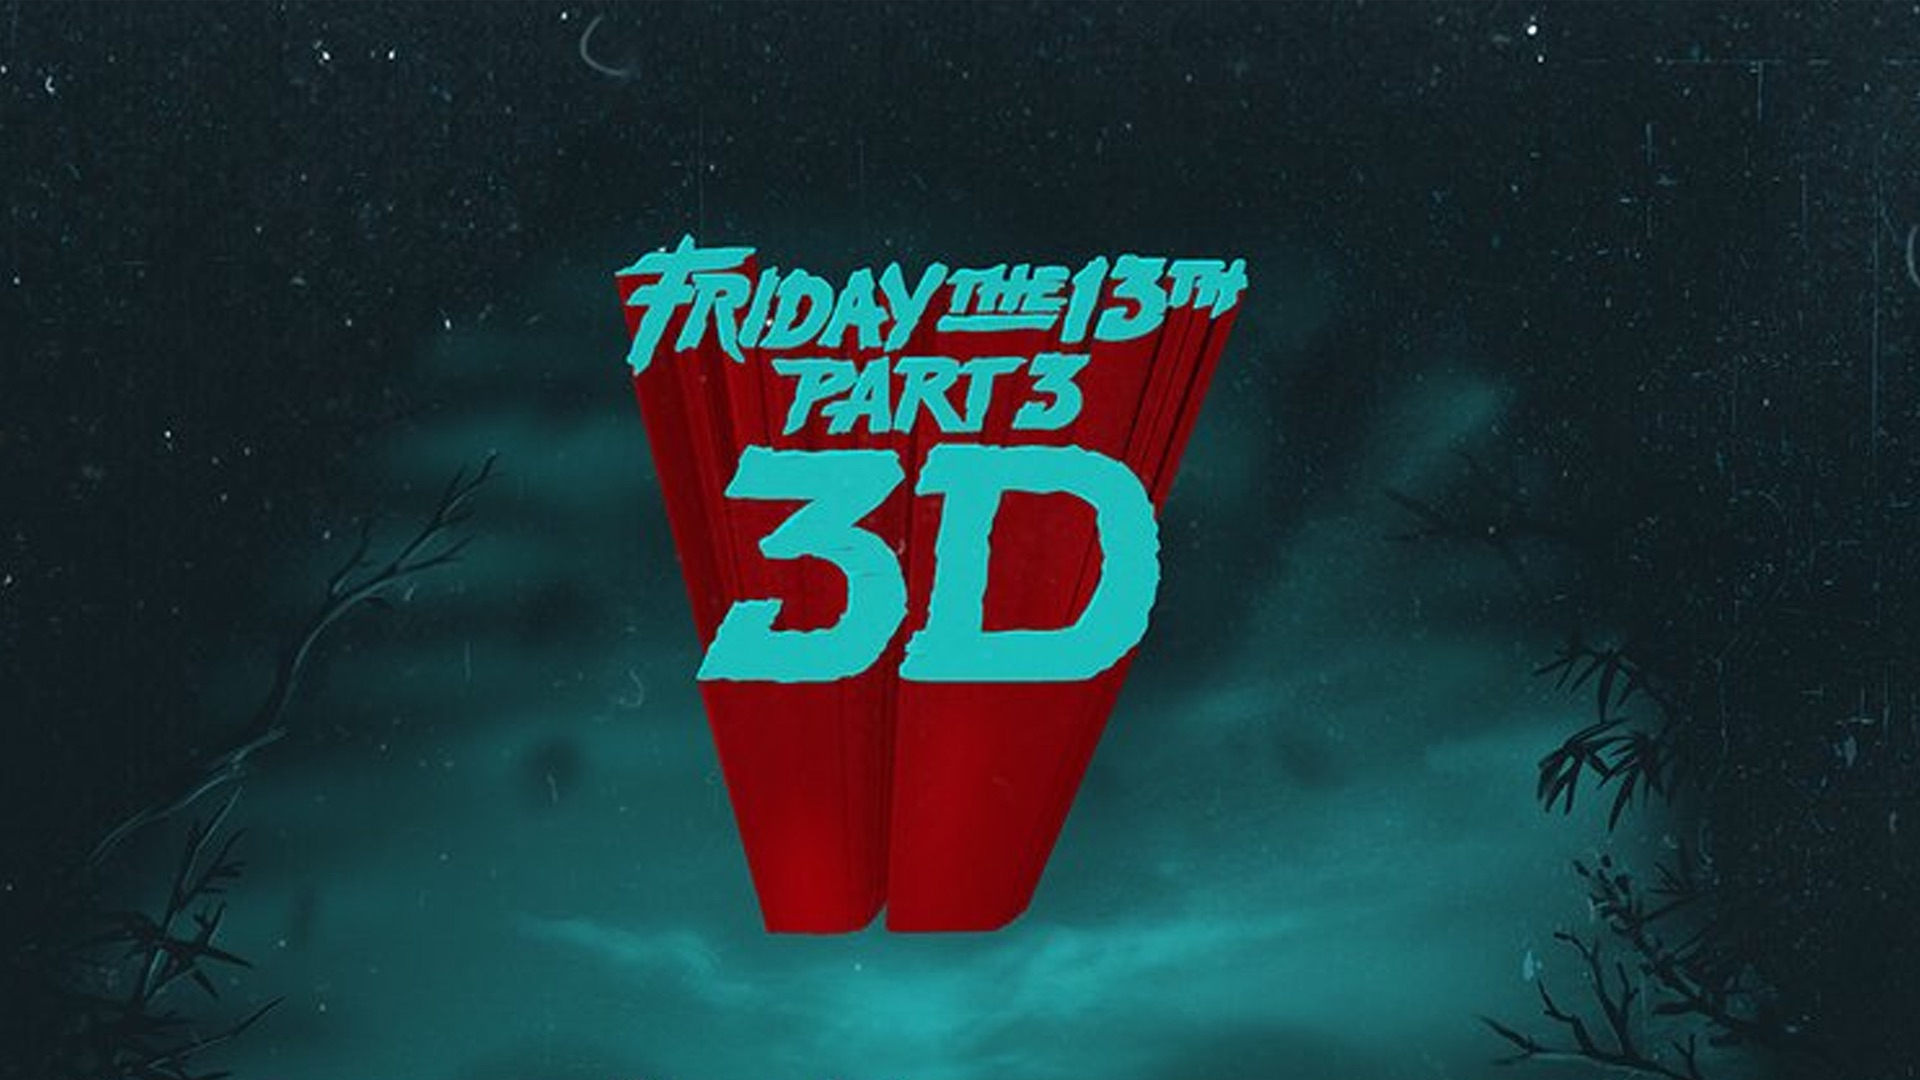 Friday The 13th Part III (In Traditional 3D) | Sidewalk Film ...